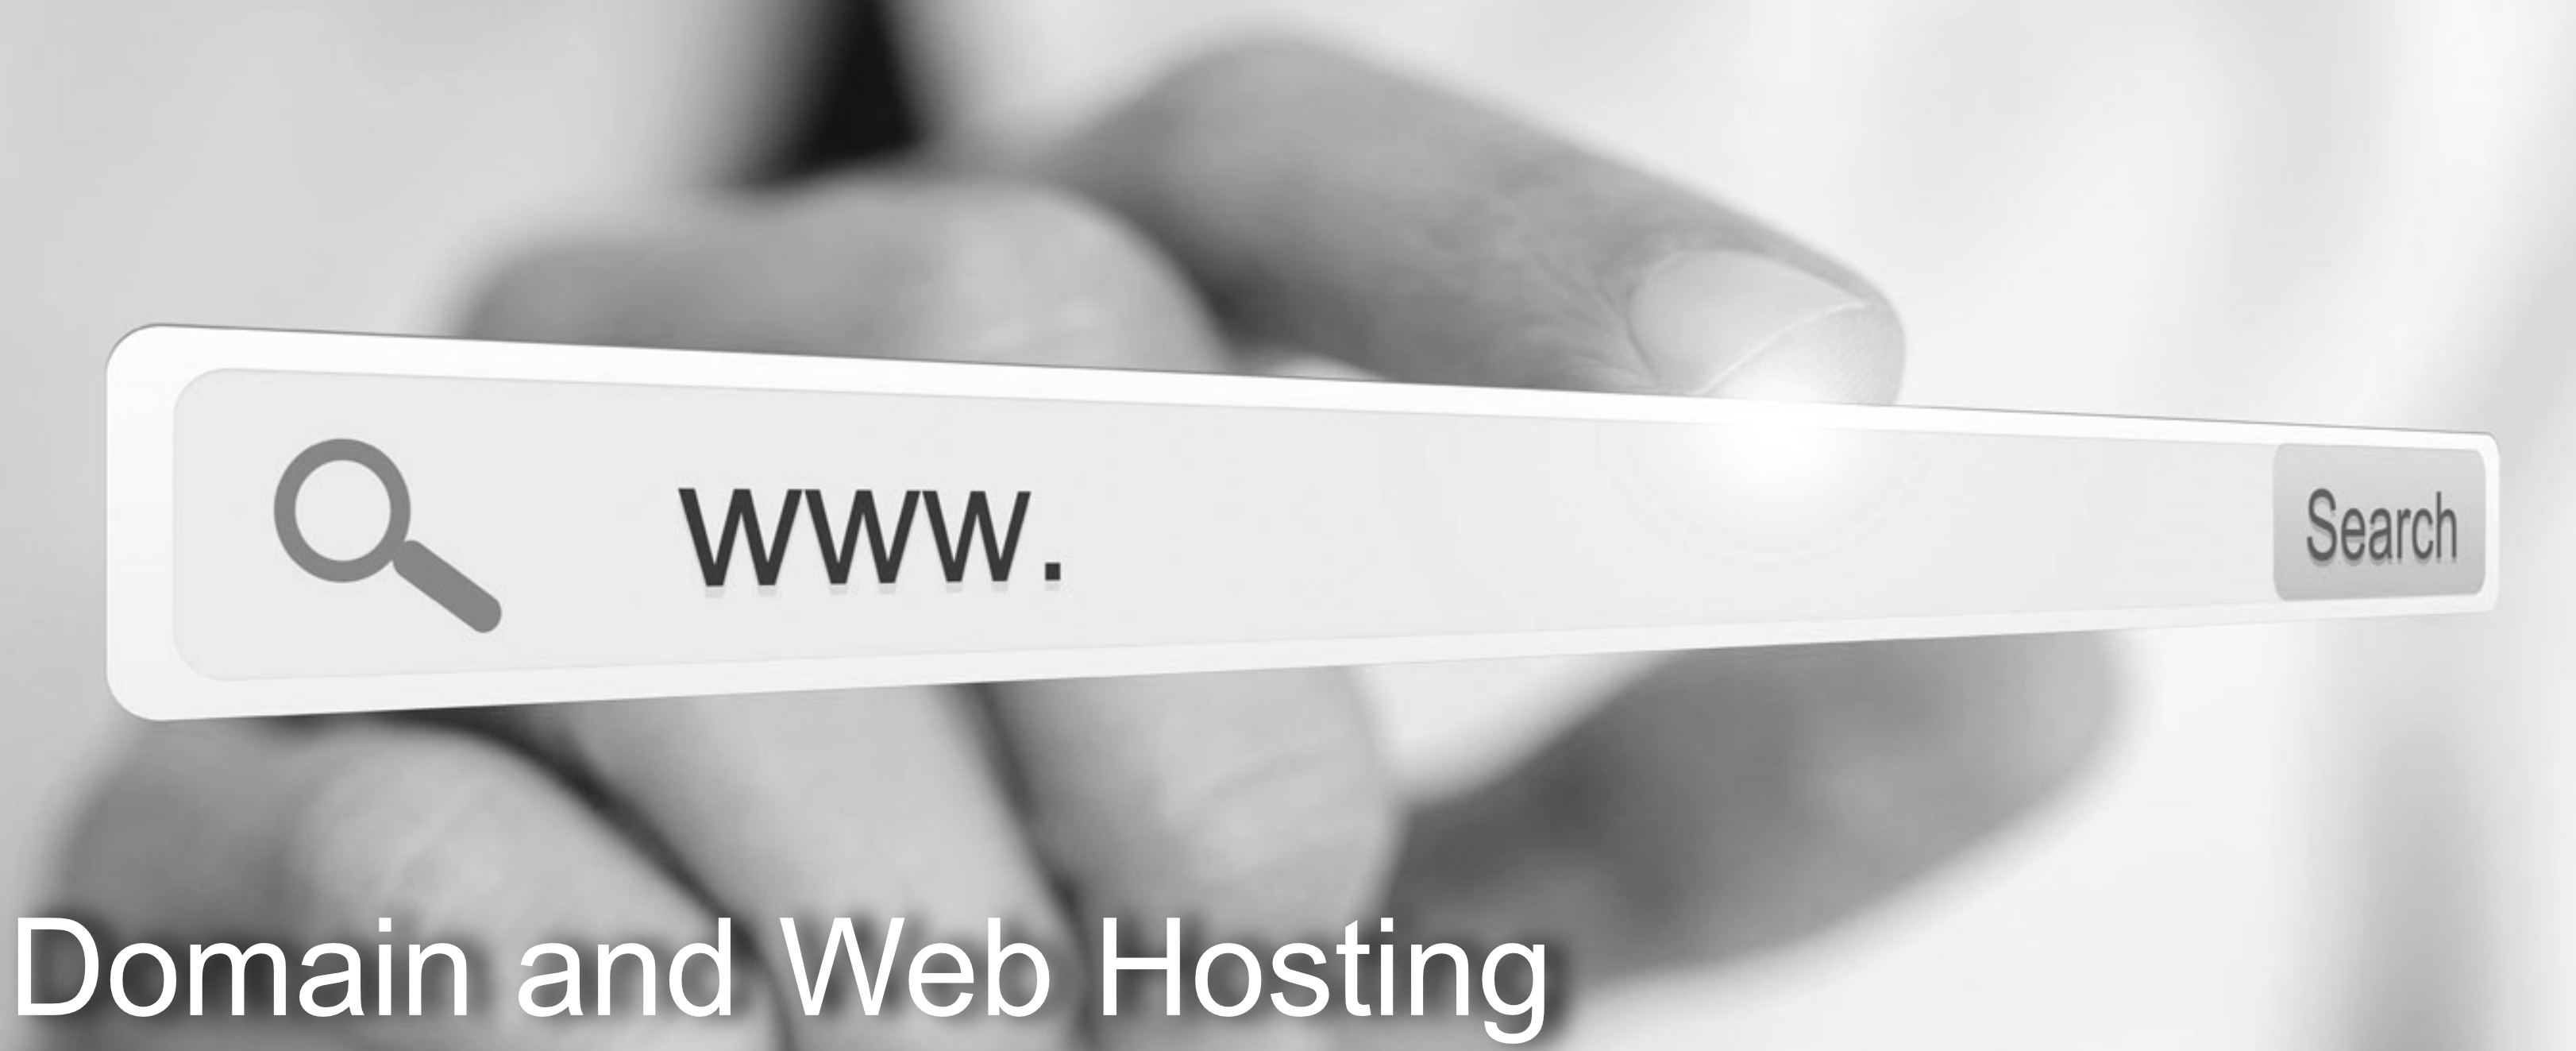 Domain and Web